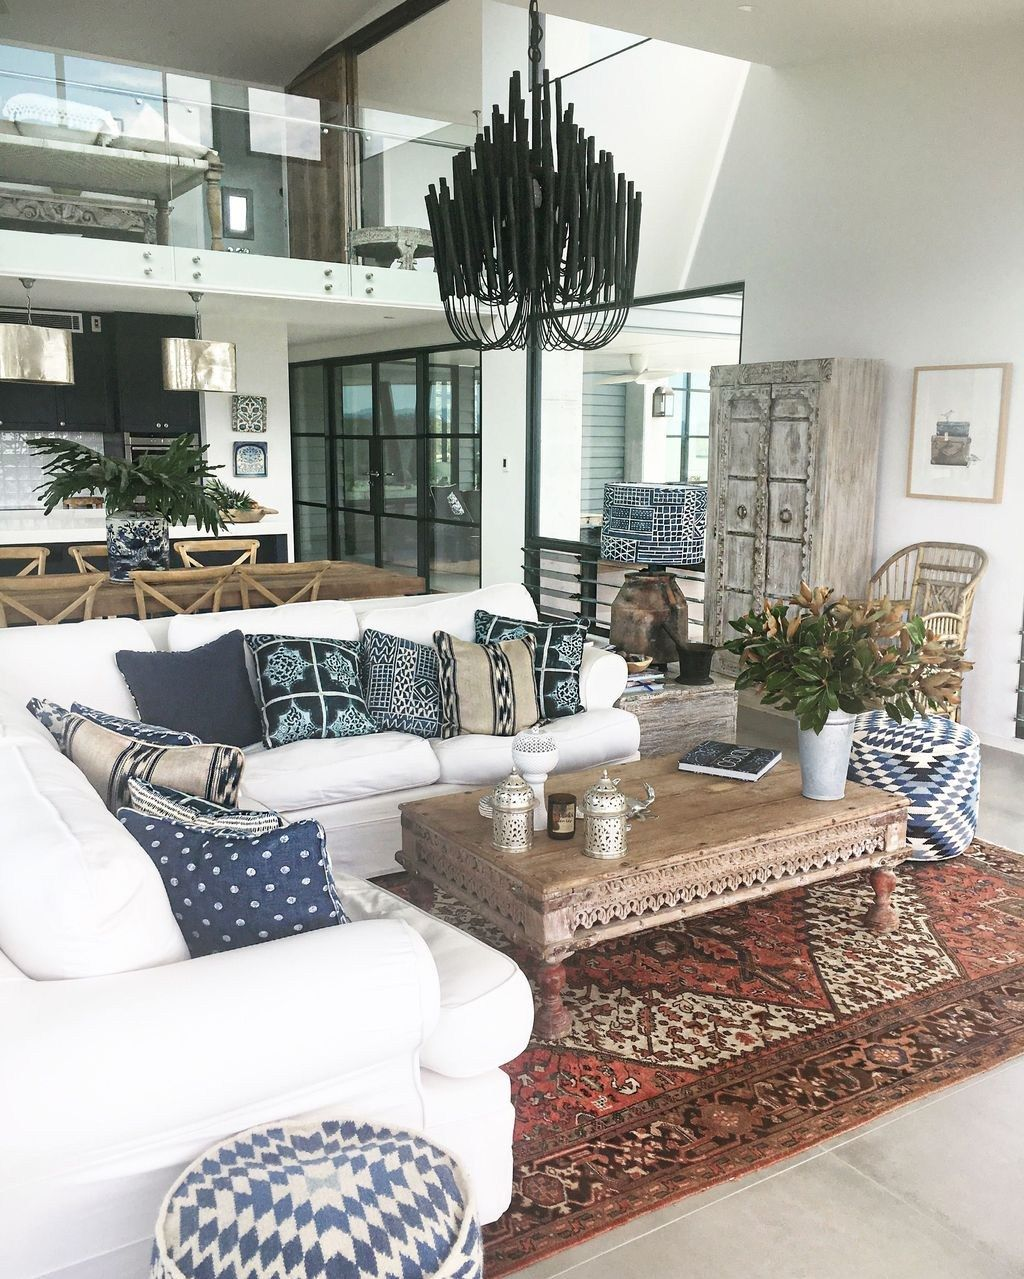 Beautiful Persian Rug Ideas For Living Room Decor 19 Rugs In Living Room Persian Rug Living Room Living Room Carpet #rugs #on #carpet #living #room